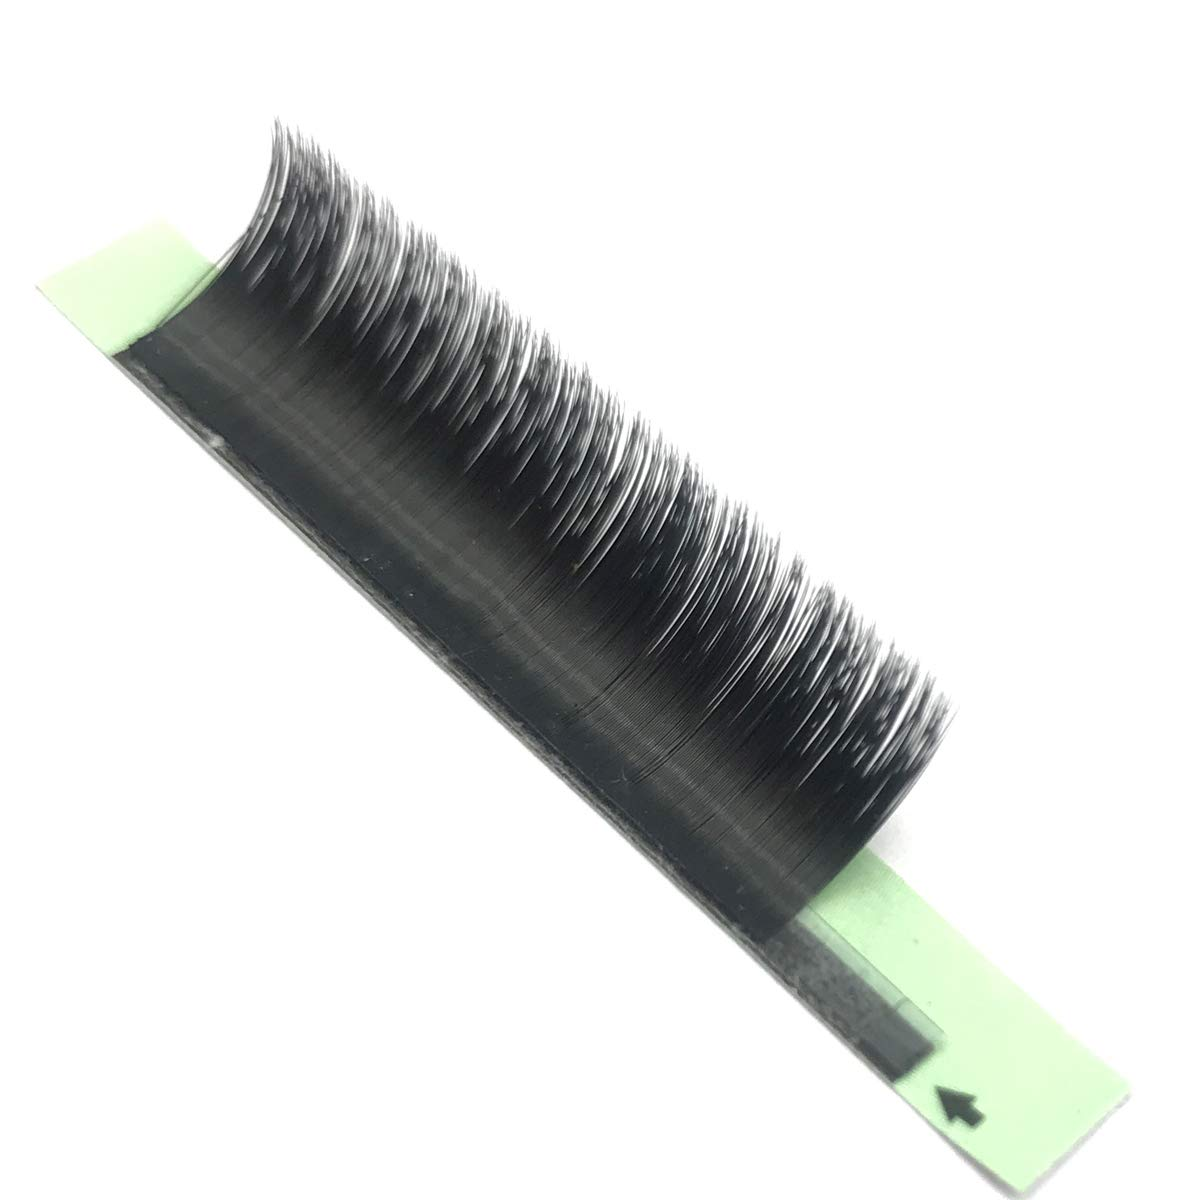 D Curl 0.05/0.07/0.10mm Thickness 8-18mm Single Length Rapid Volume Lash Extensions ZX083